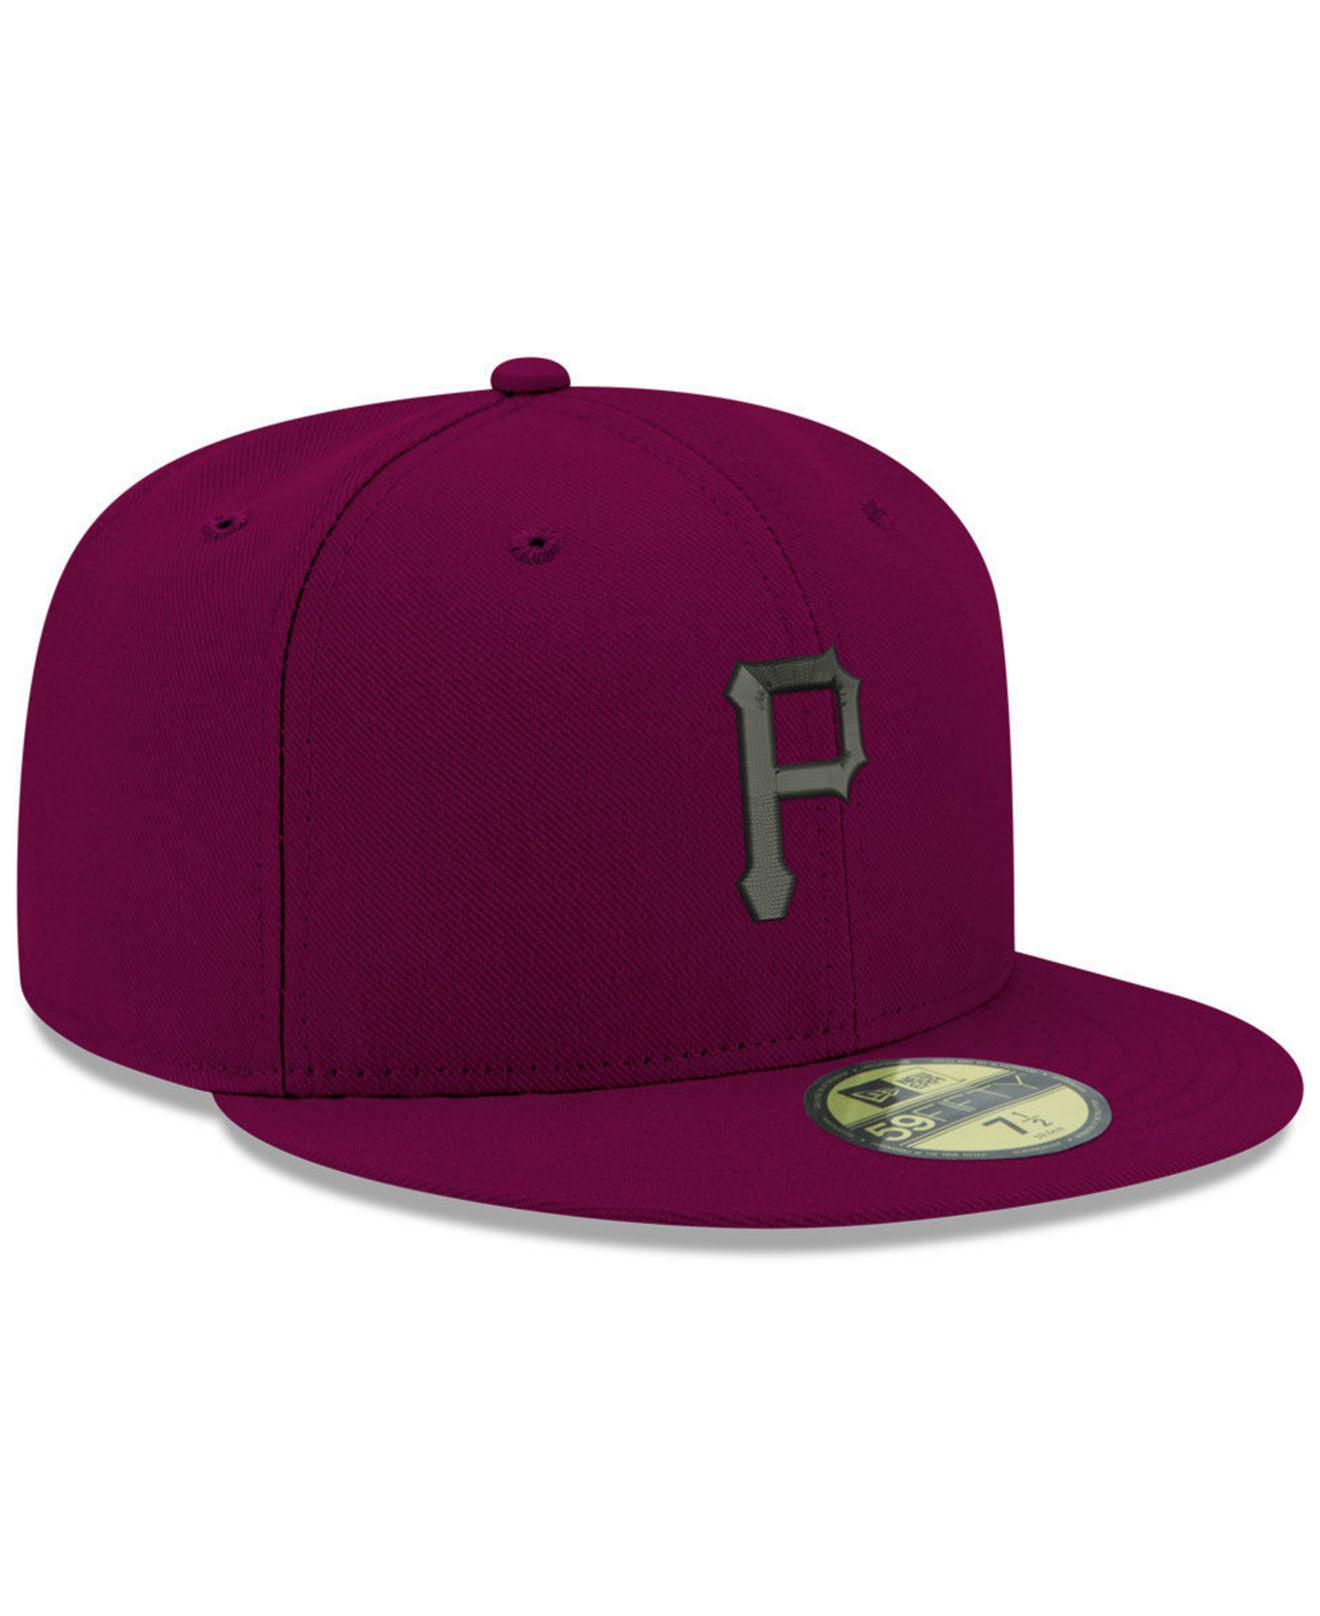 new product e2ec6 07859 ... promo code for pittsburgh pirates reverse c dub 59fifty fitted cap for  men lyst. view